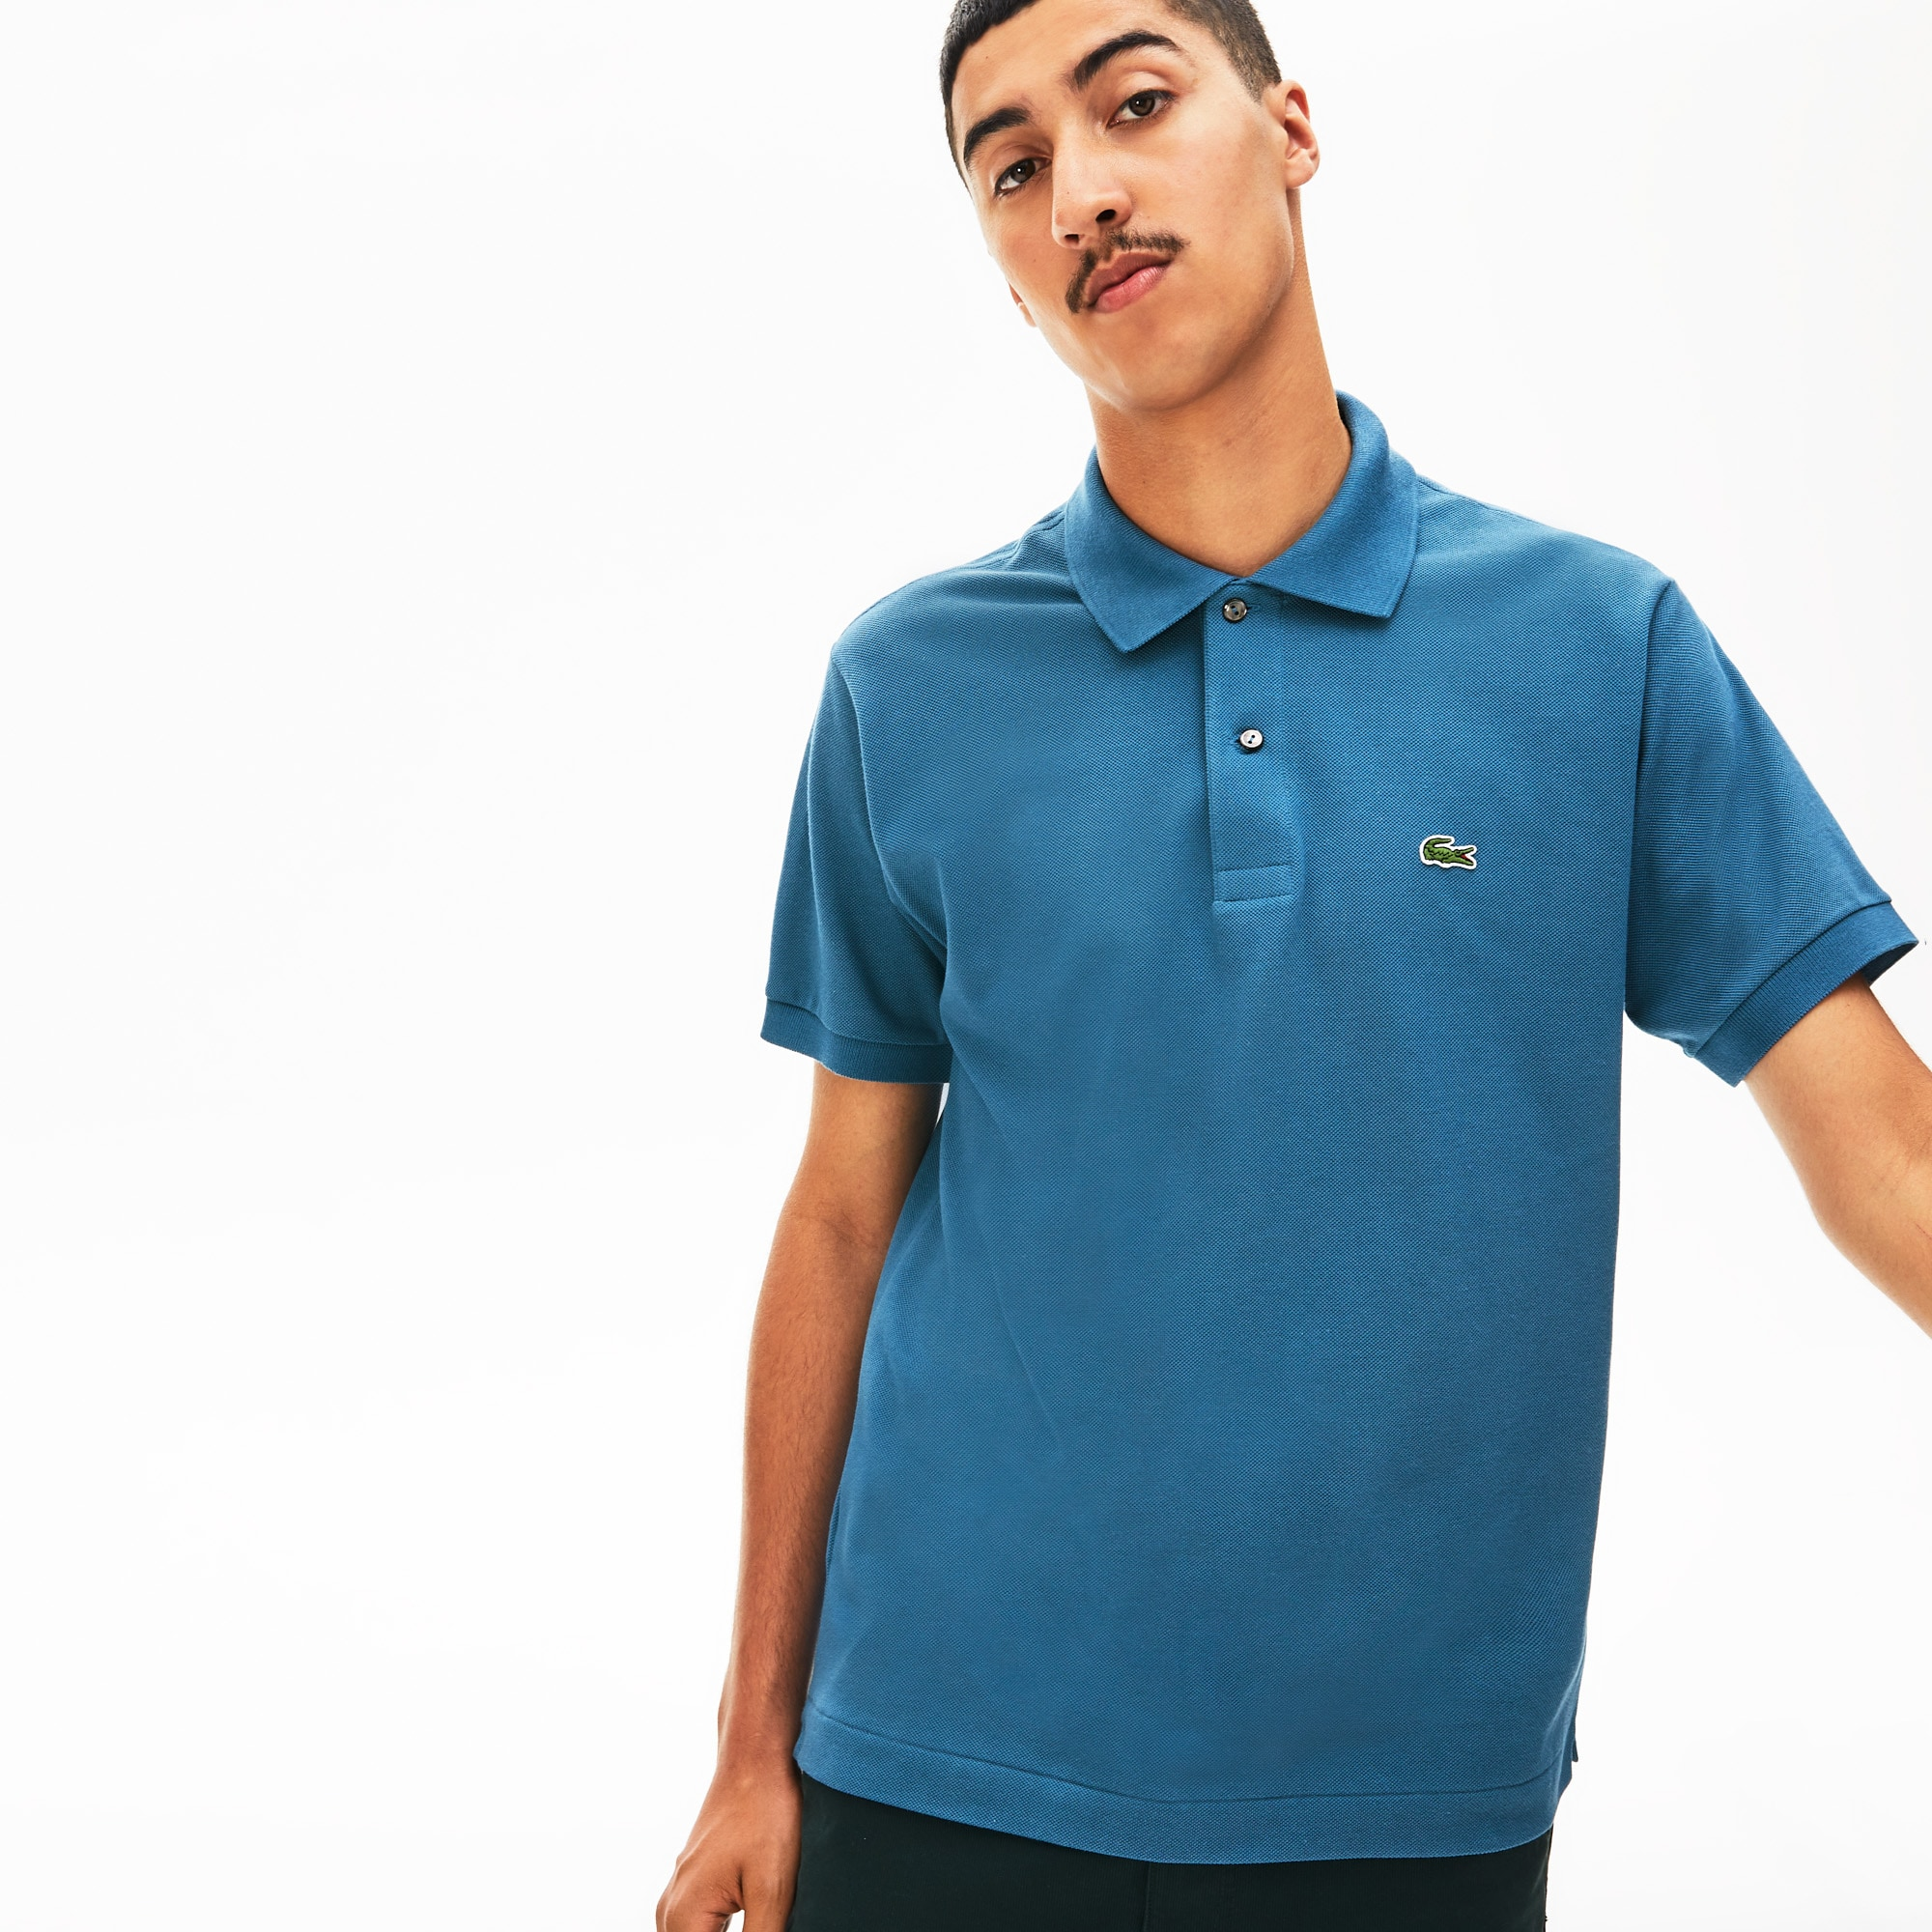 L1212Homme Polos Polos L1212Homme Les Lacoste Lacoste Les f7IbvyY6g